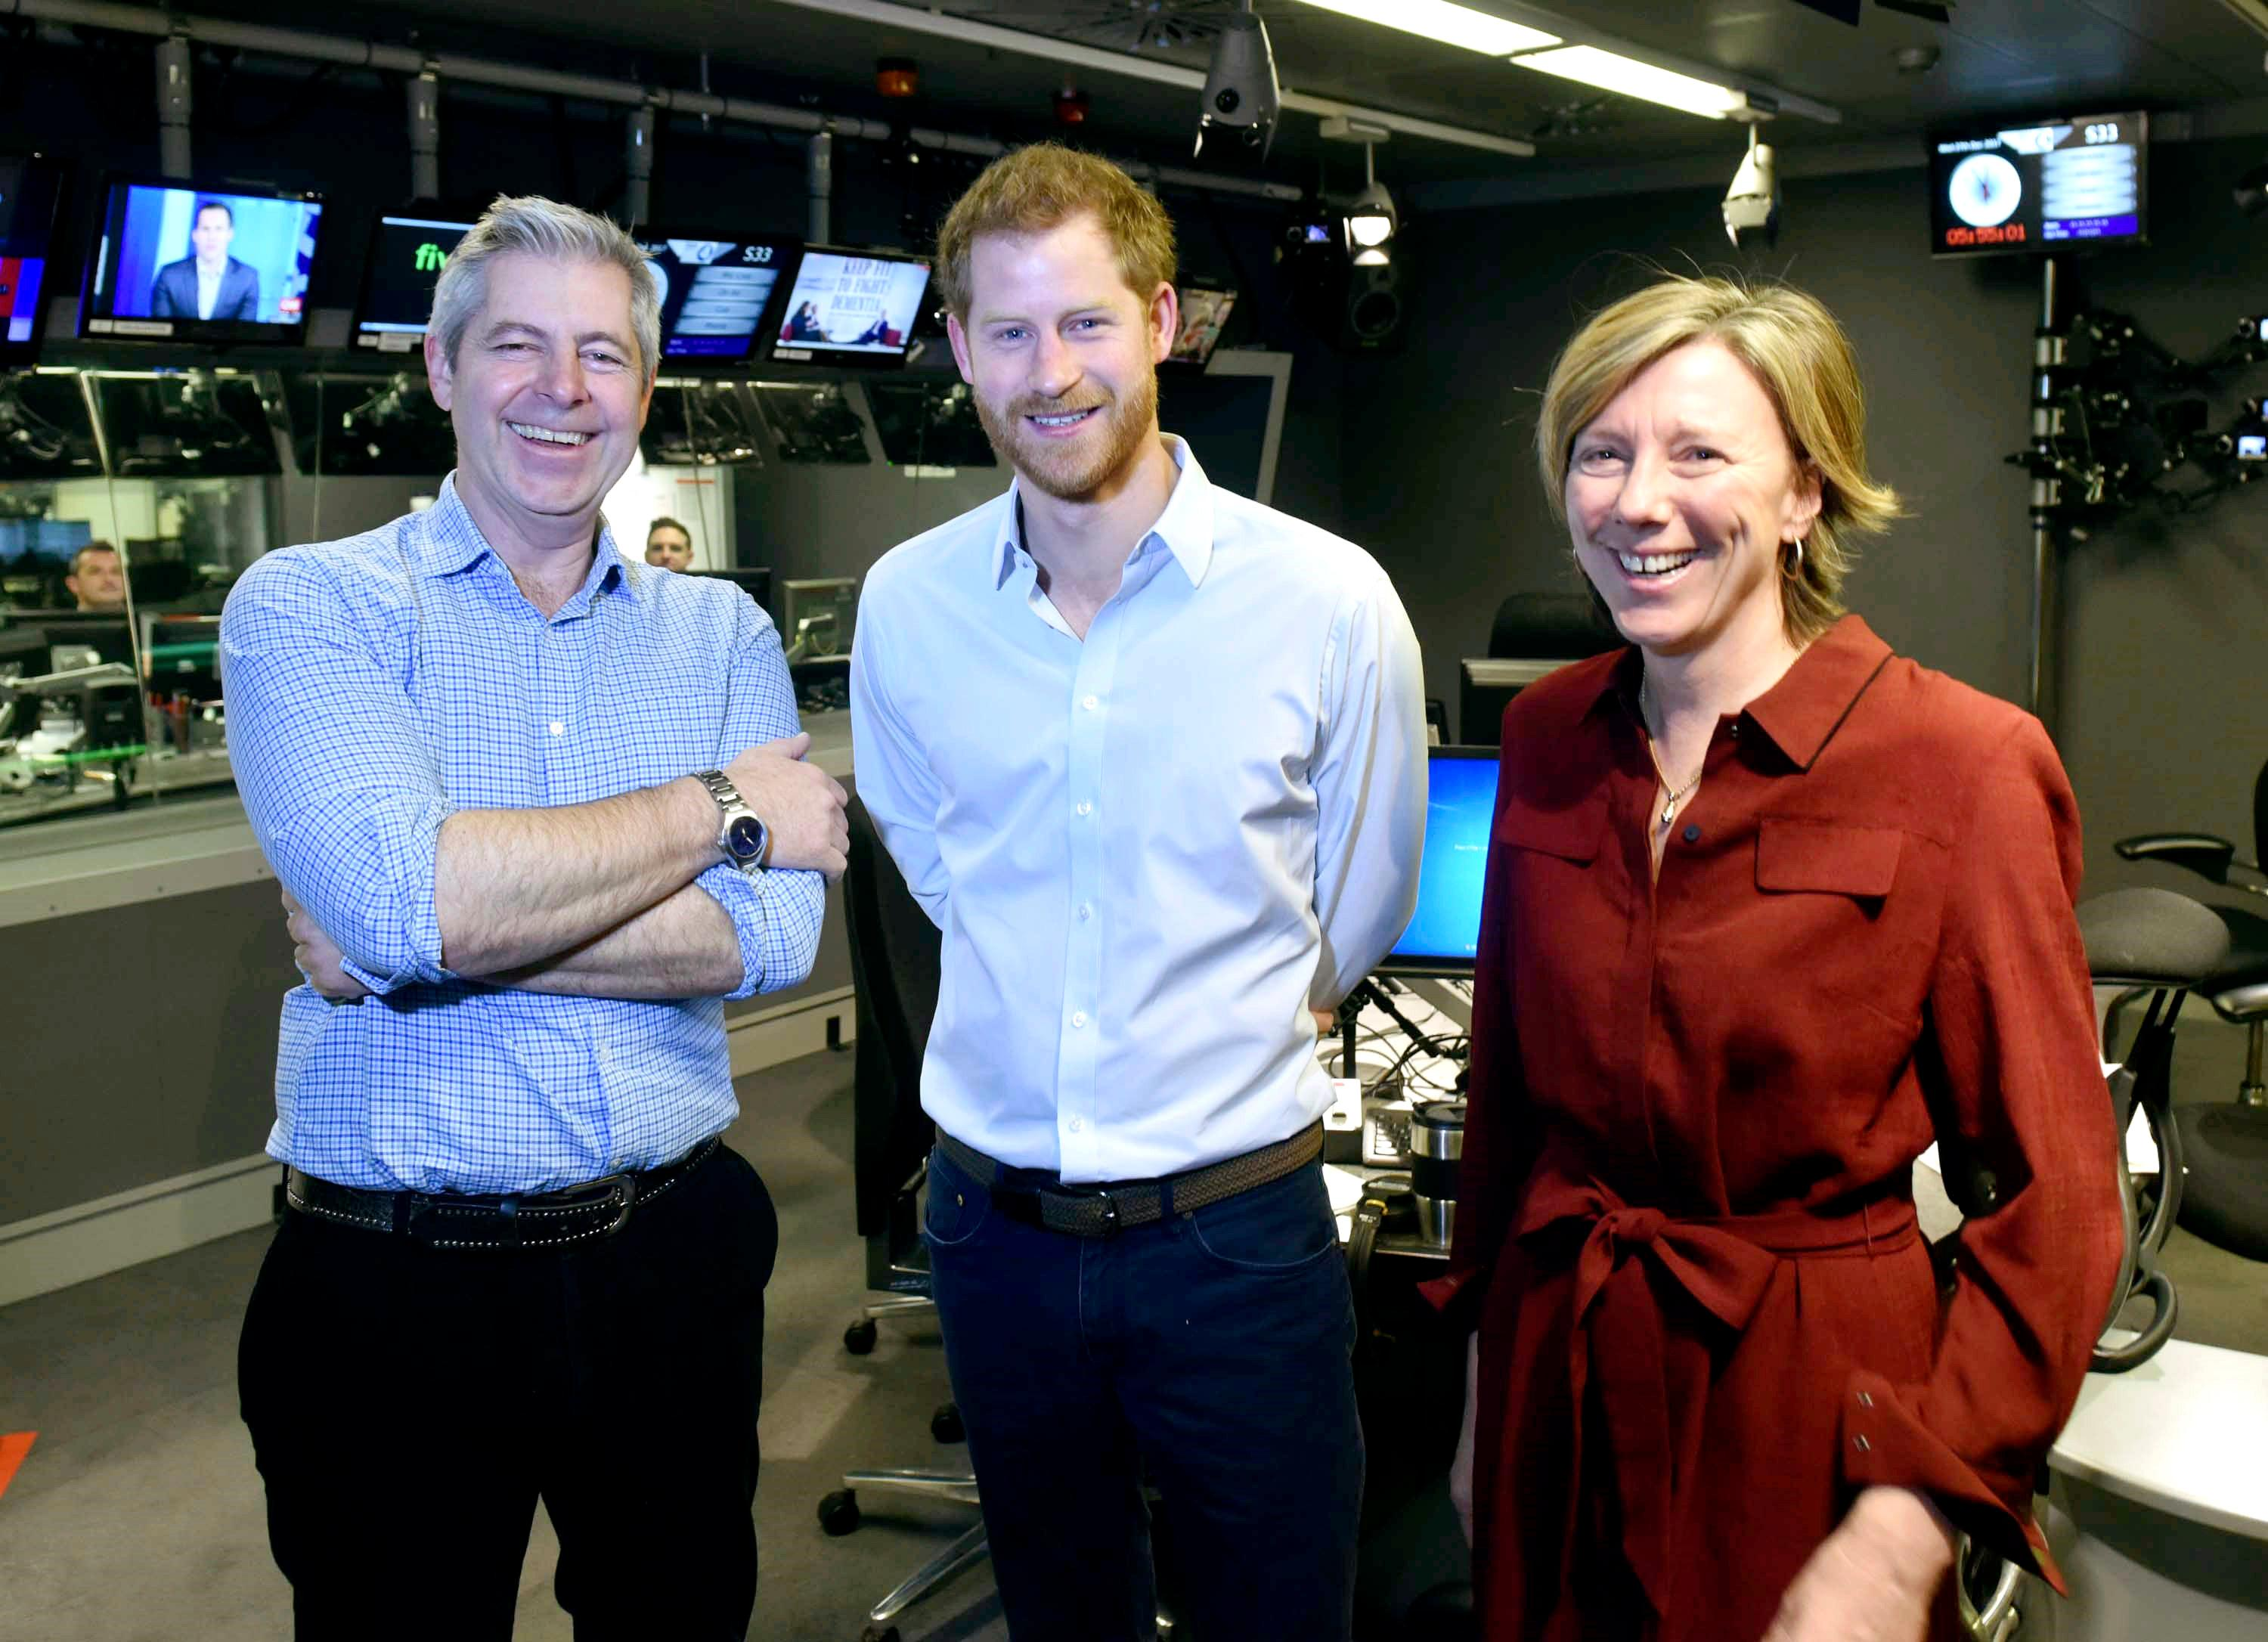 In this BBC handout photograph released on Wednesday, Dec. 27, 2017, Britain's Prince Harry, centre, poses for a photo with presenters Justin Webb and Sarah Montague in the studio for the Radio 4 Today programme which he has guest edited, in London. (Jeff Overs /BBC/PA via AP)